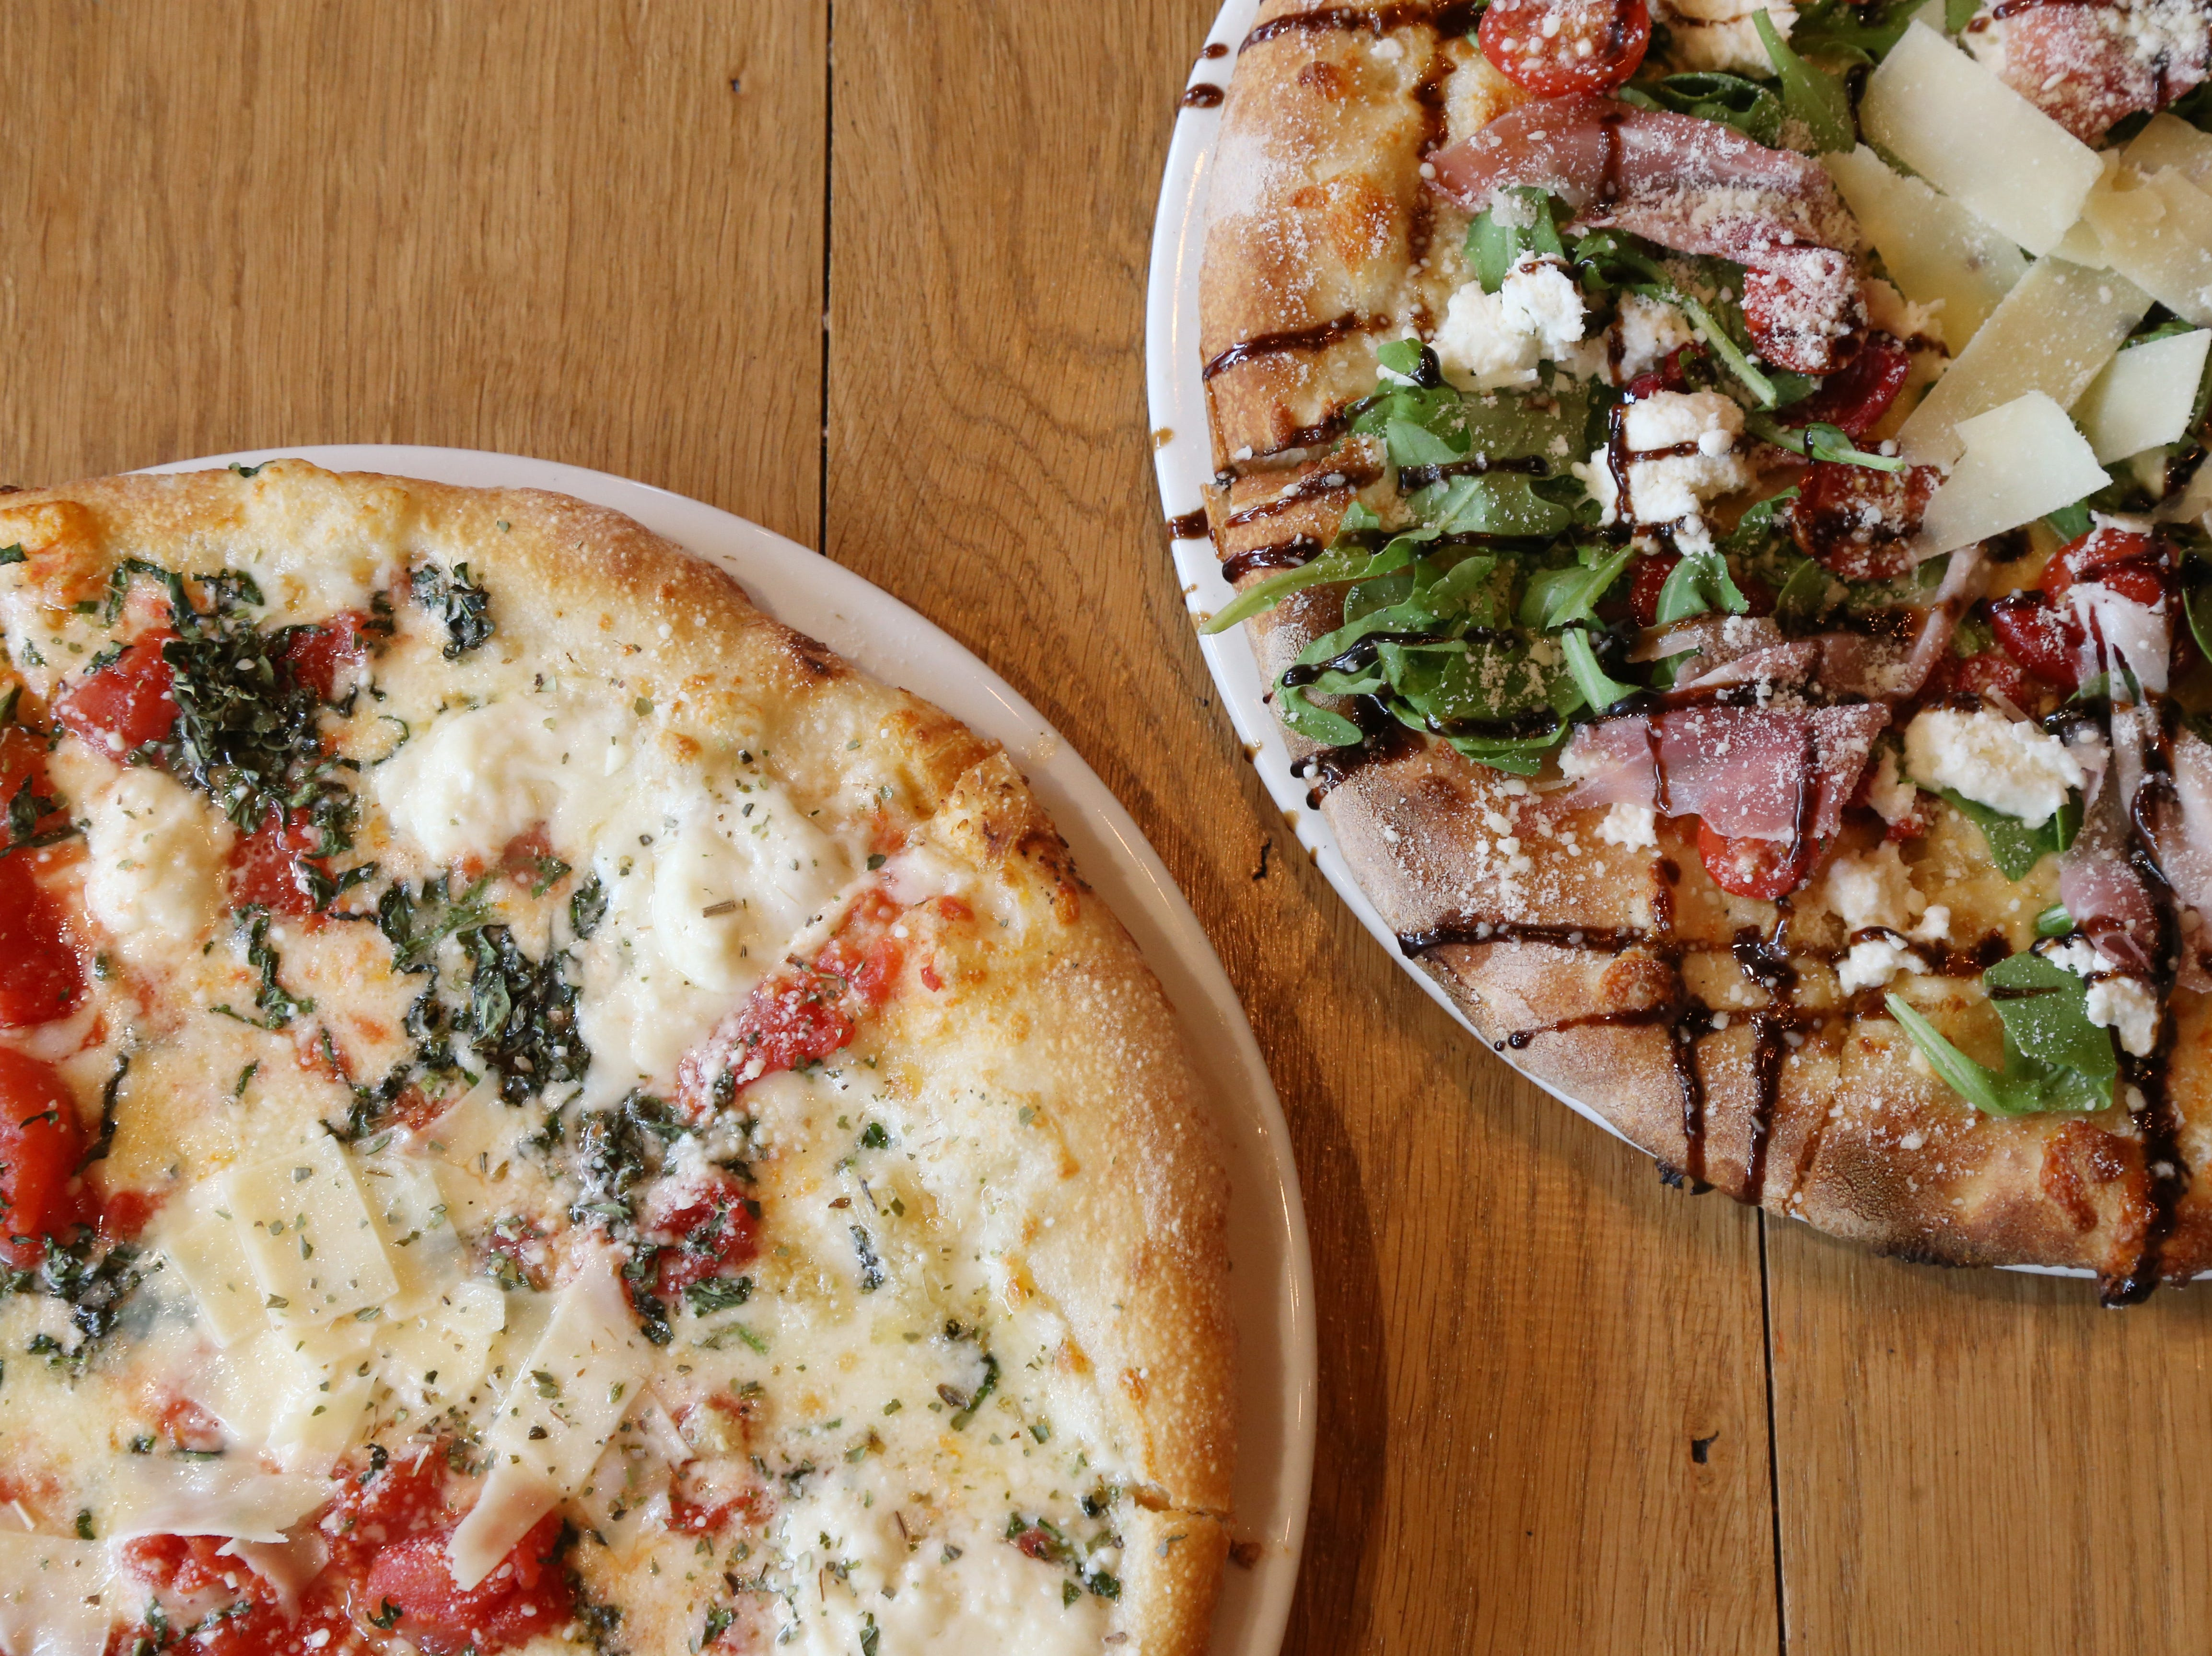 From left, a Nonna Romana and an Antonella brick oven pie at Pizza Union in the Town of Newburg on August 31, 2018.